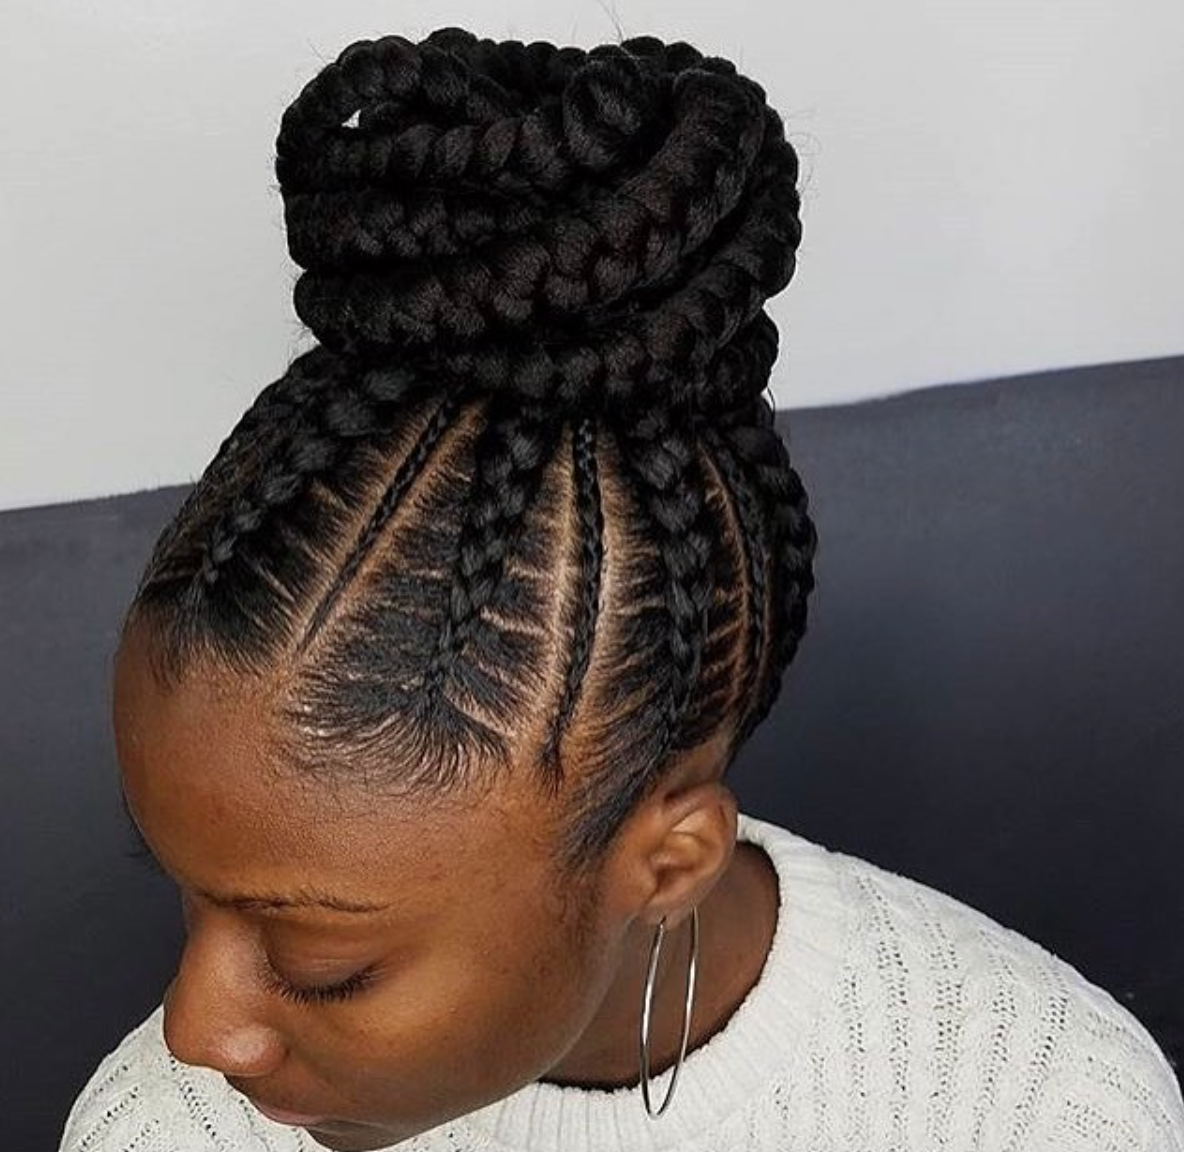 Flawless Braided Bun By Narahairbraiding Http Blackhairinformation Com Hairstyle Gallery Flawless Braid With Images Natural Hair Styles Cornrow Hairstyles Hair Styles